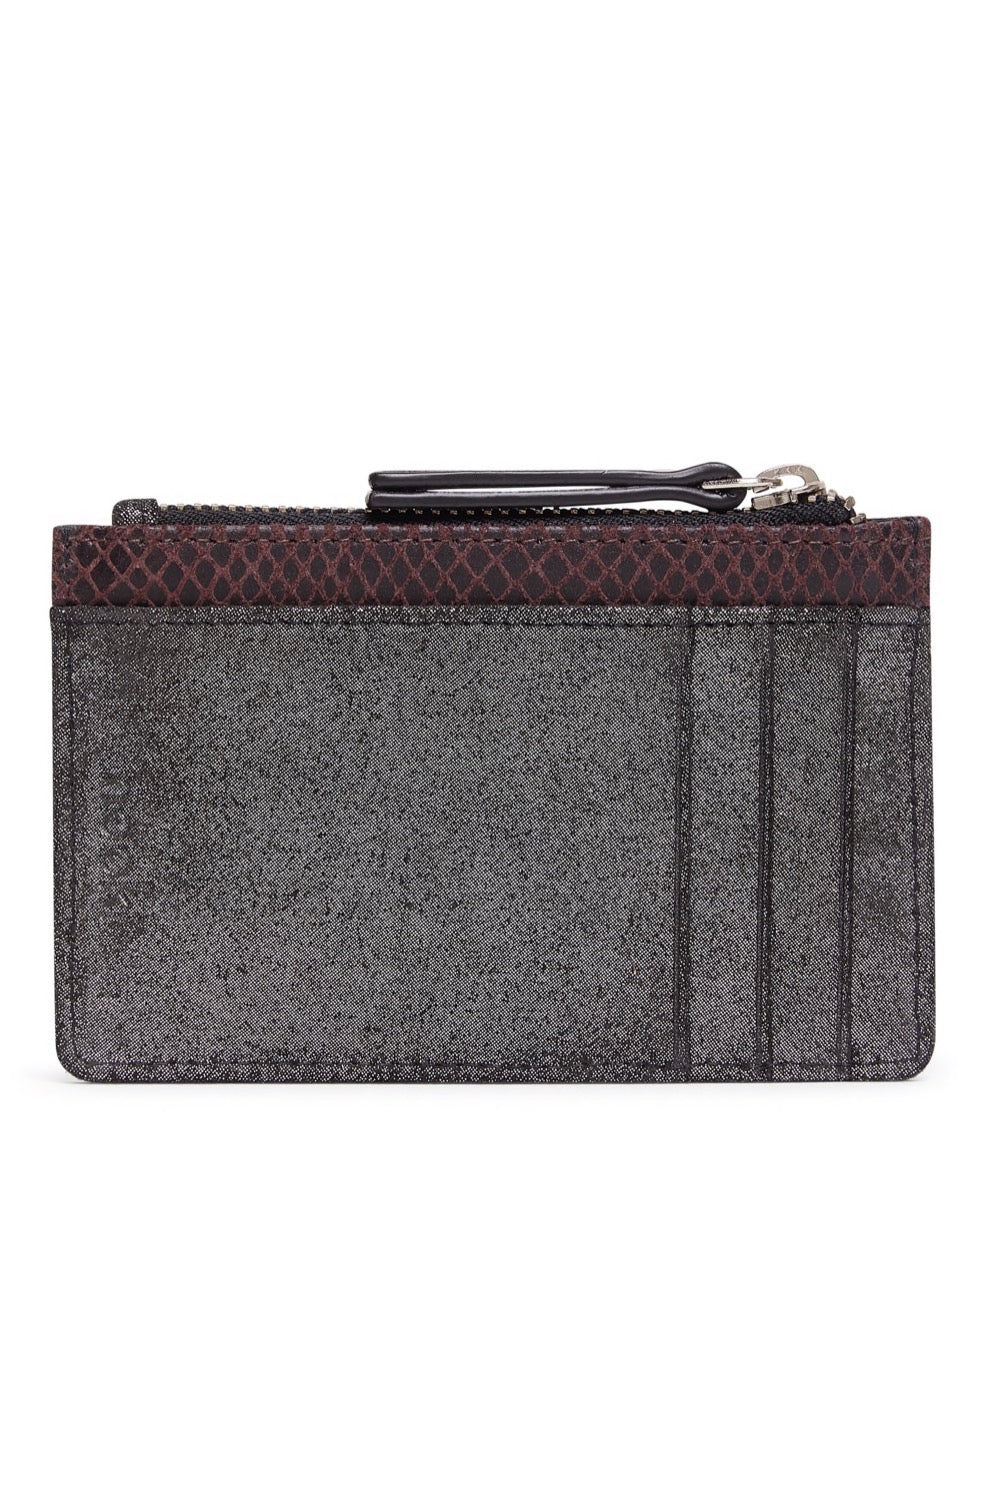 Rubin Card Holder - Gunmetal & Burgandy Snake Print